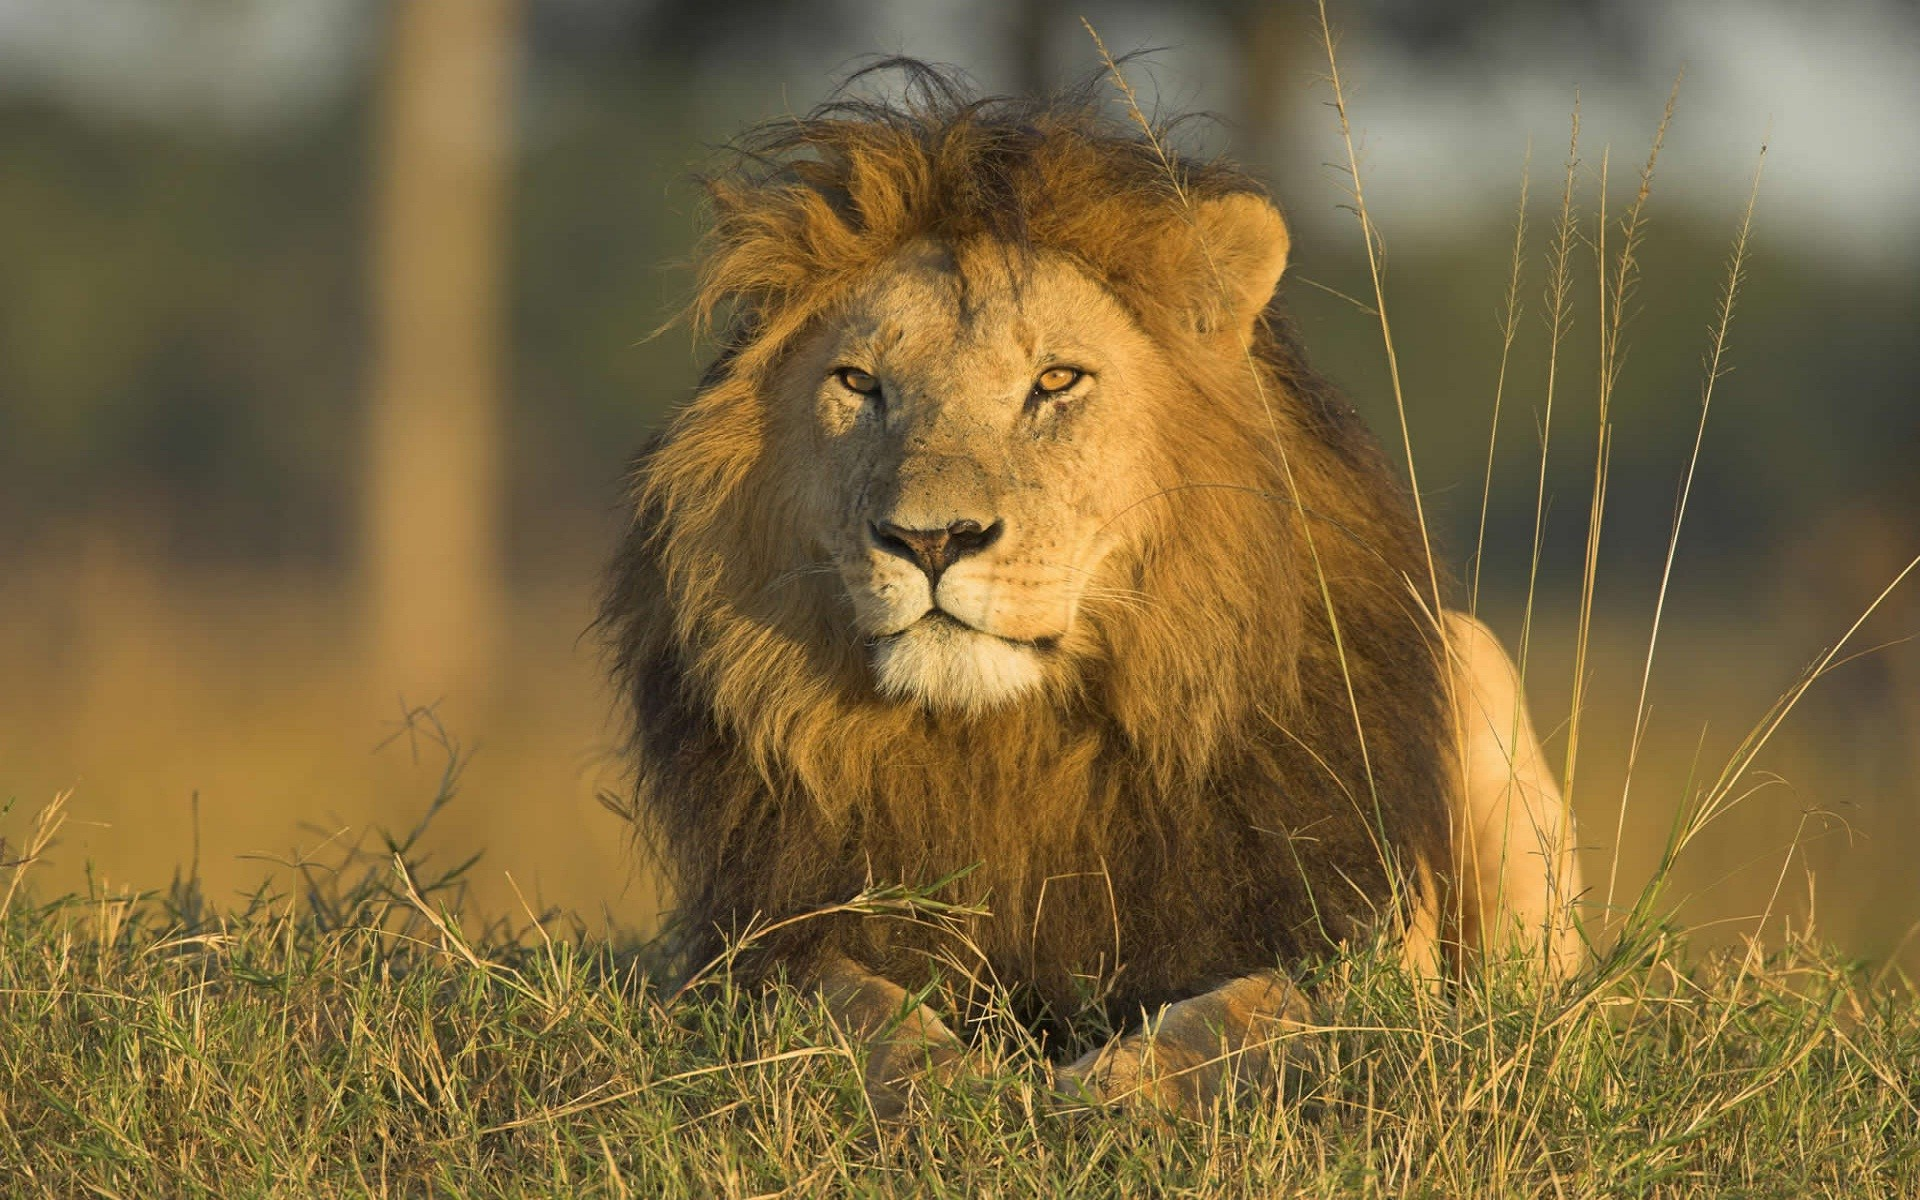 Danger lion in jungle most beautiful picture – New hd .